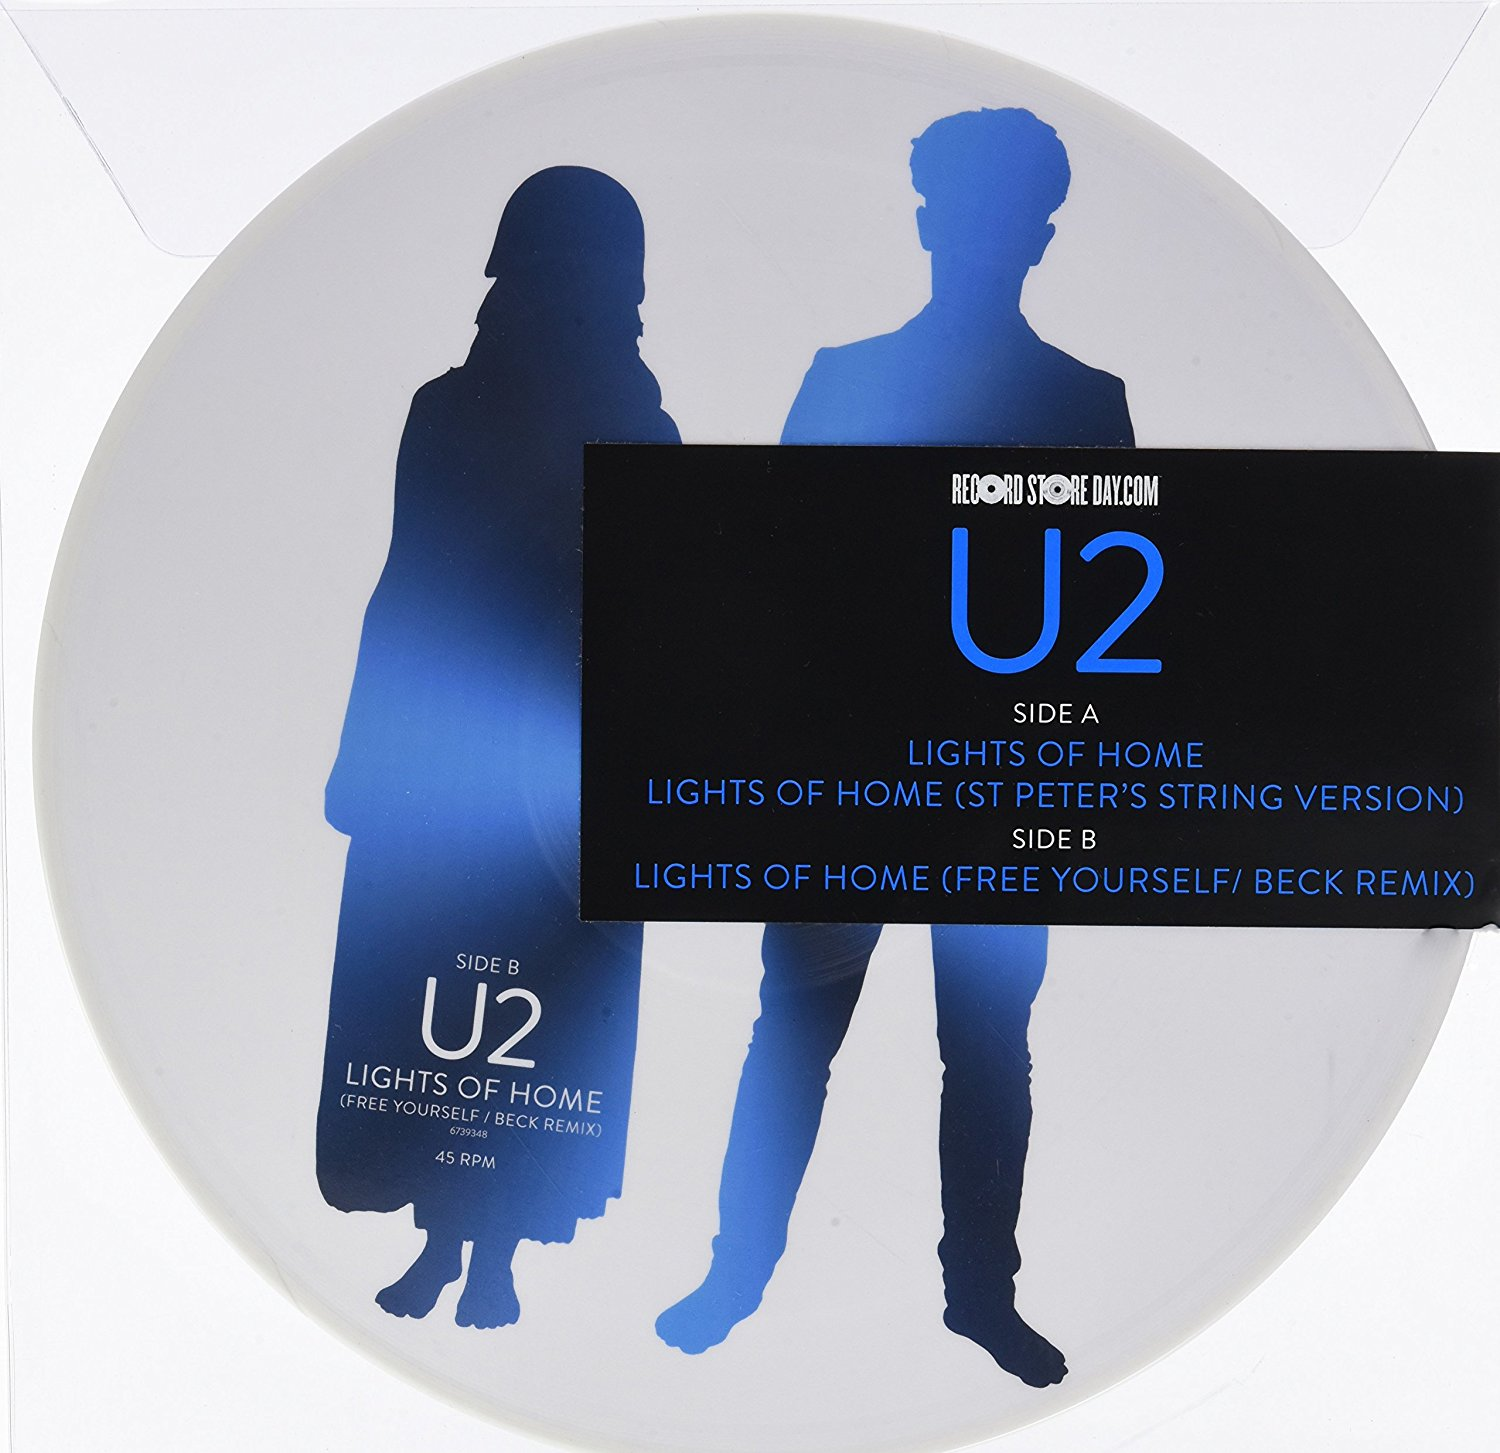 Lights of Home - U2